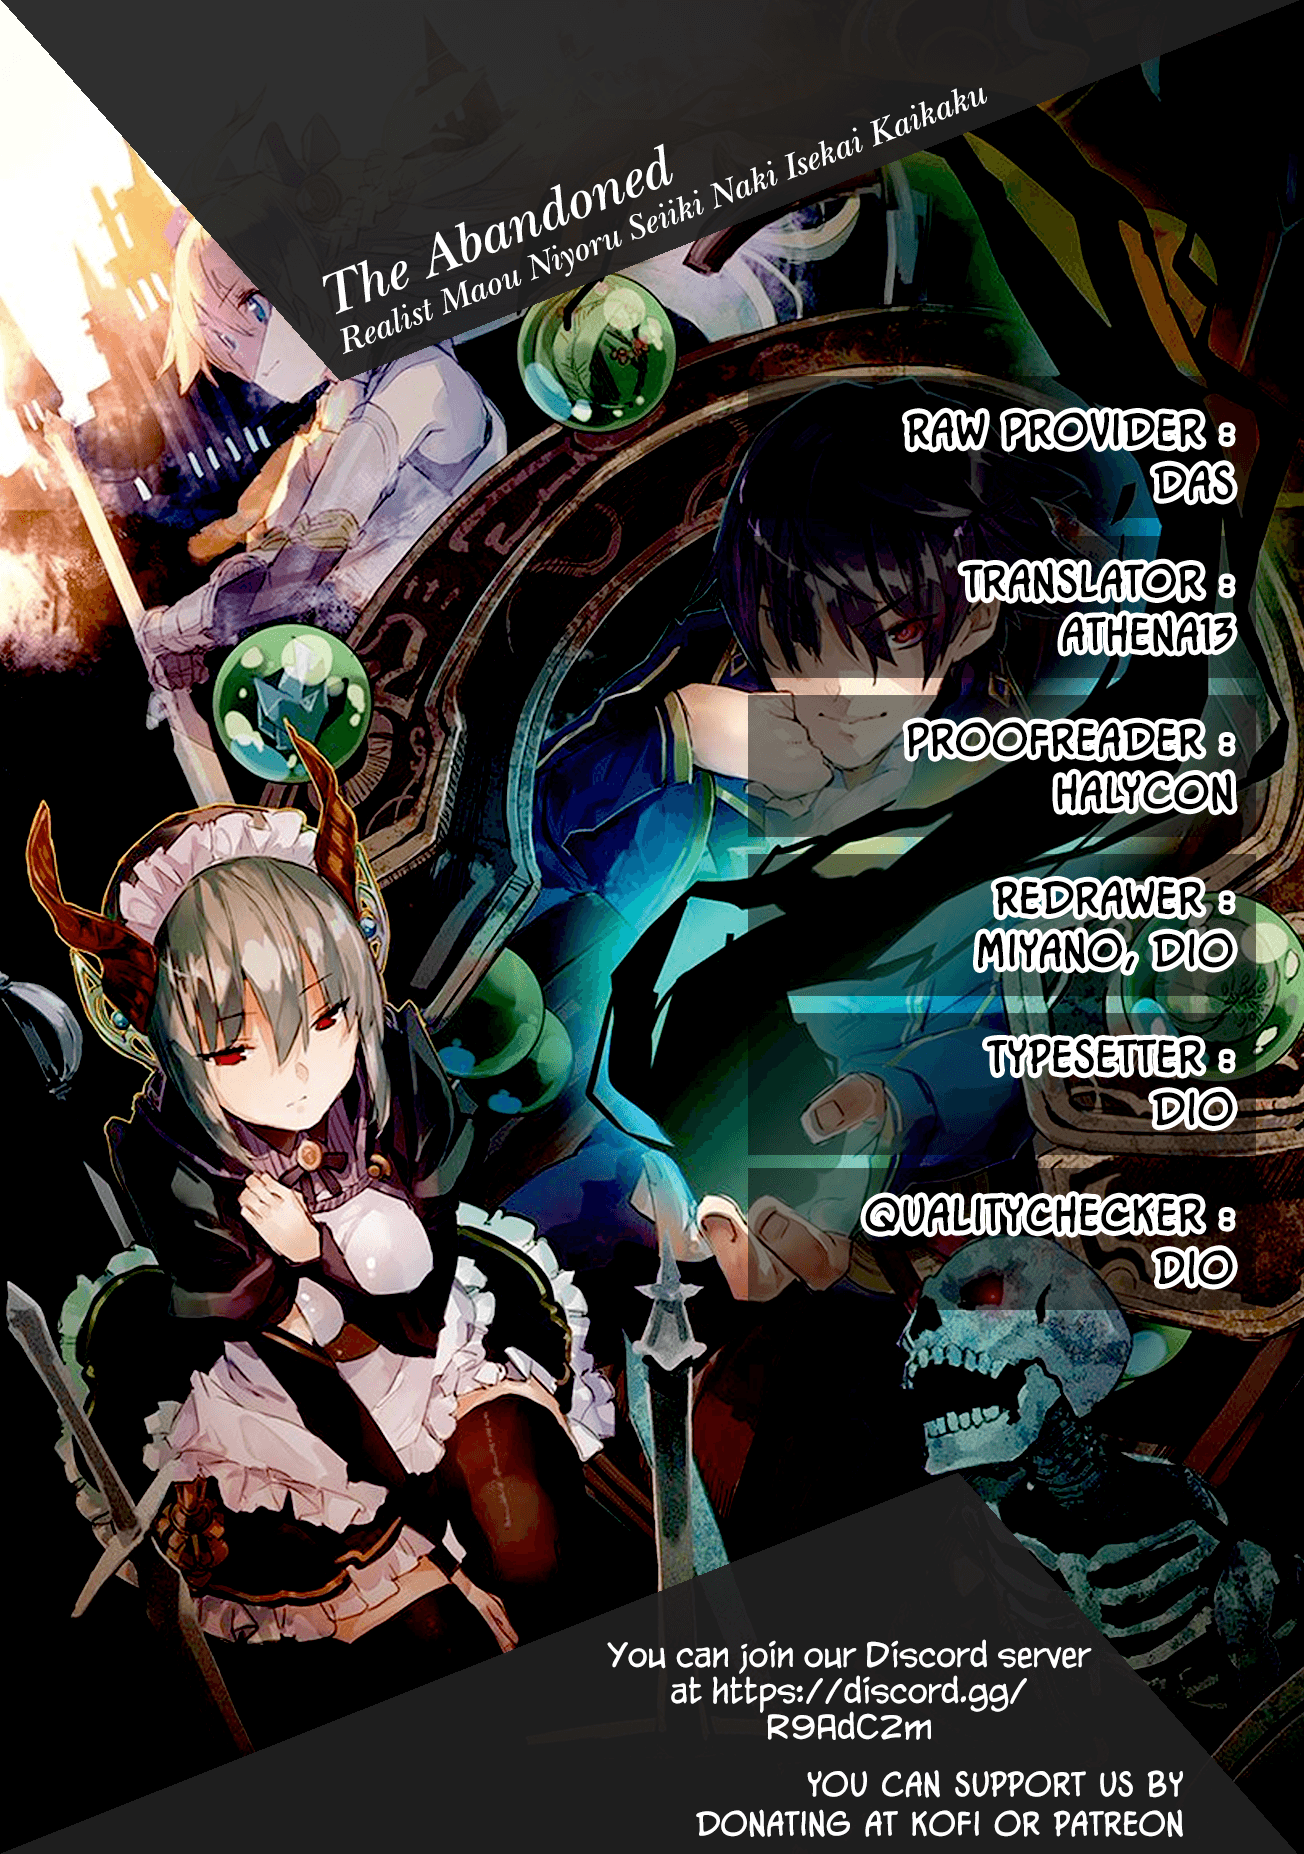 Manga The Legendary Rebuilding of a World by a Realist Demon King - Chapter 12 Page 1